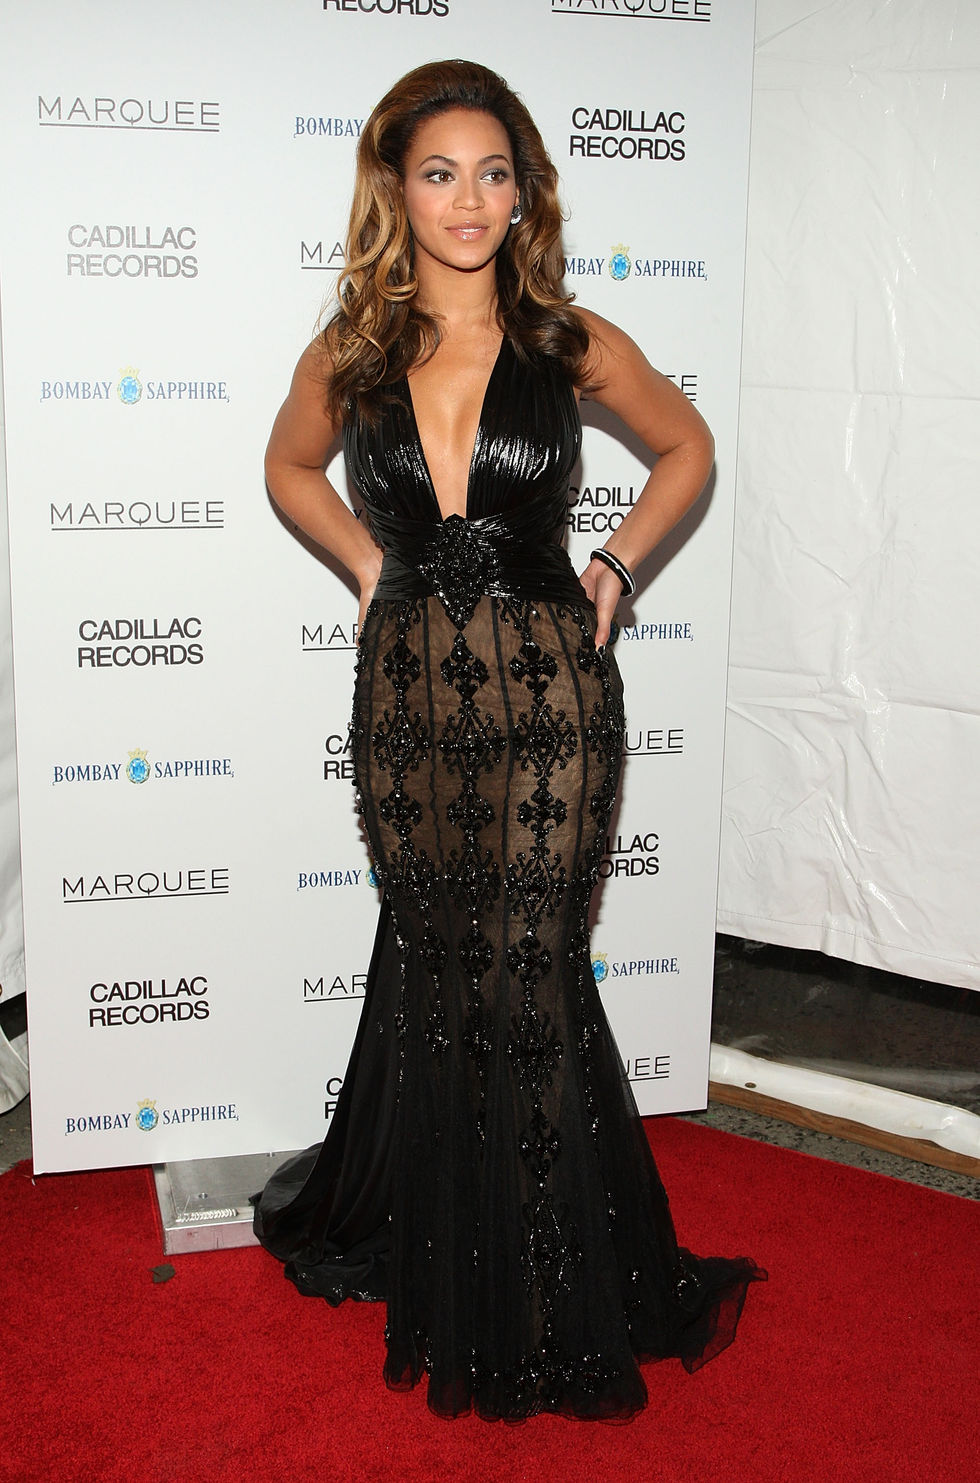 beyonce-knowles-cadillac-records-premiere-in-new-york-city-01